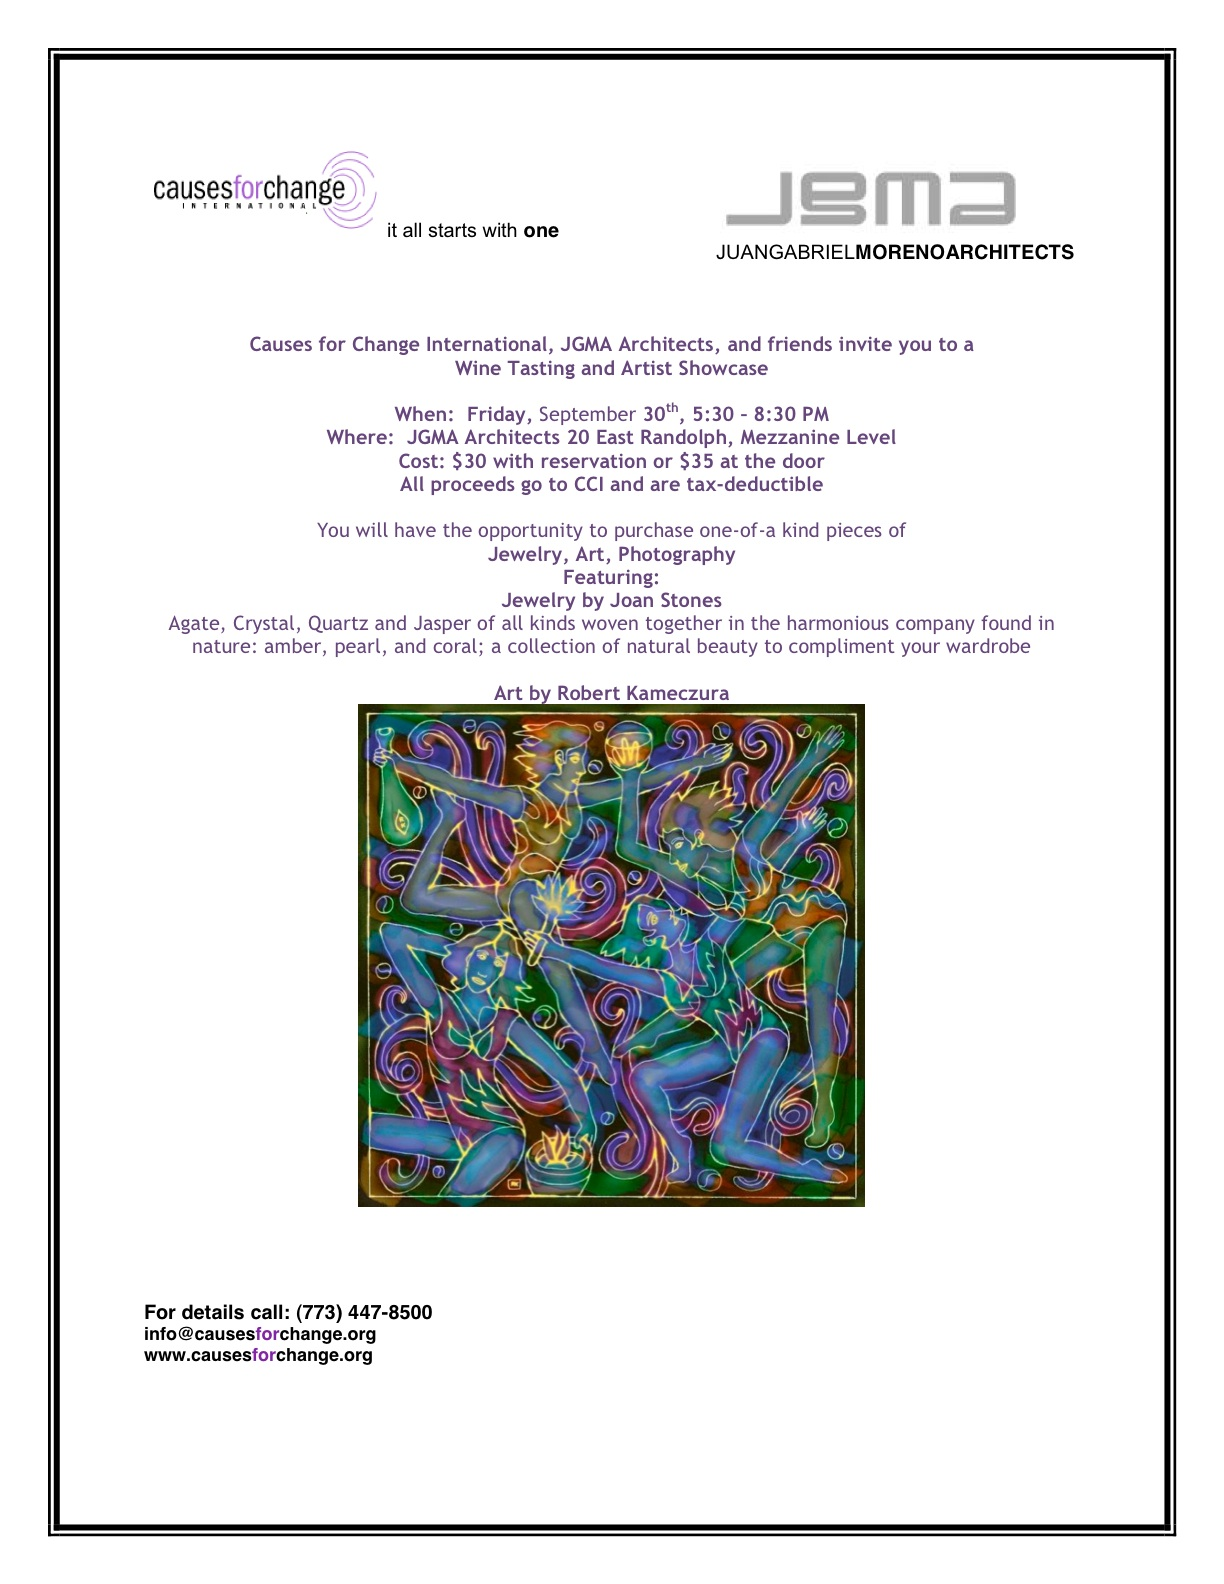 CCI Wine Tasting and Feature Artist